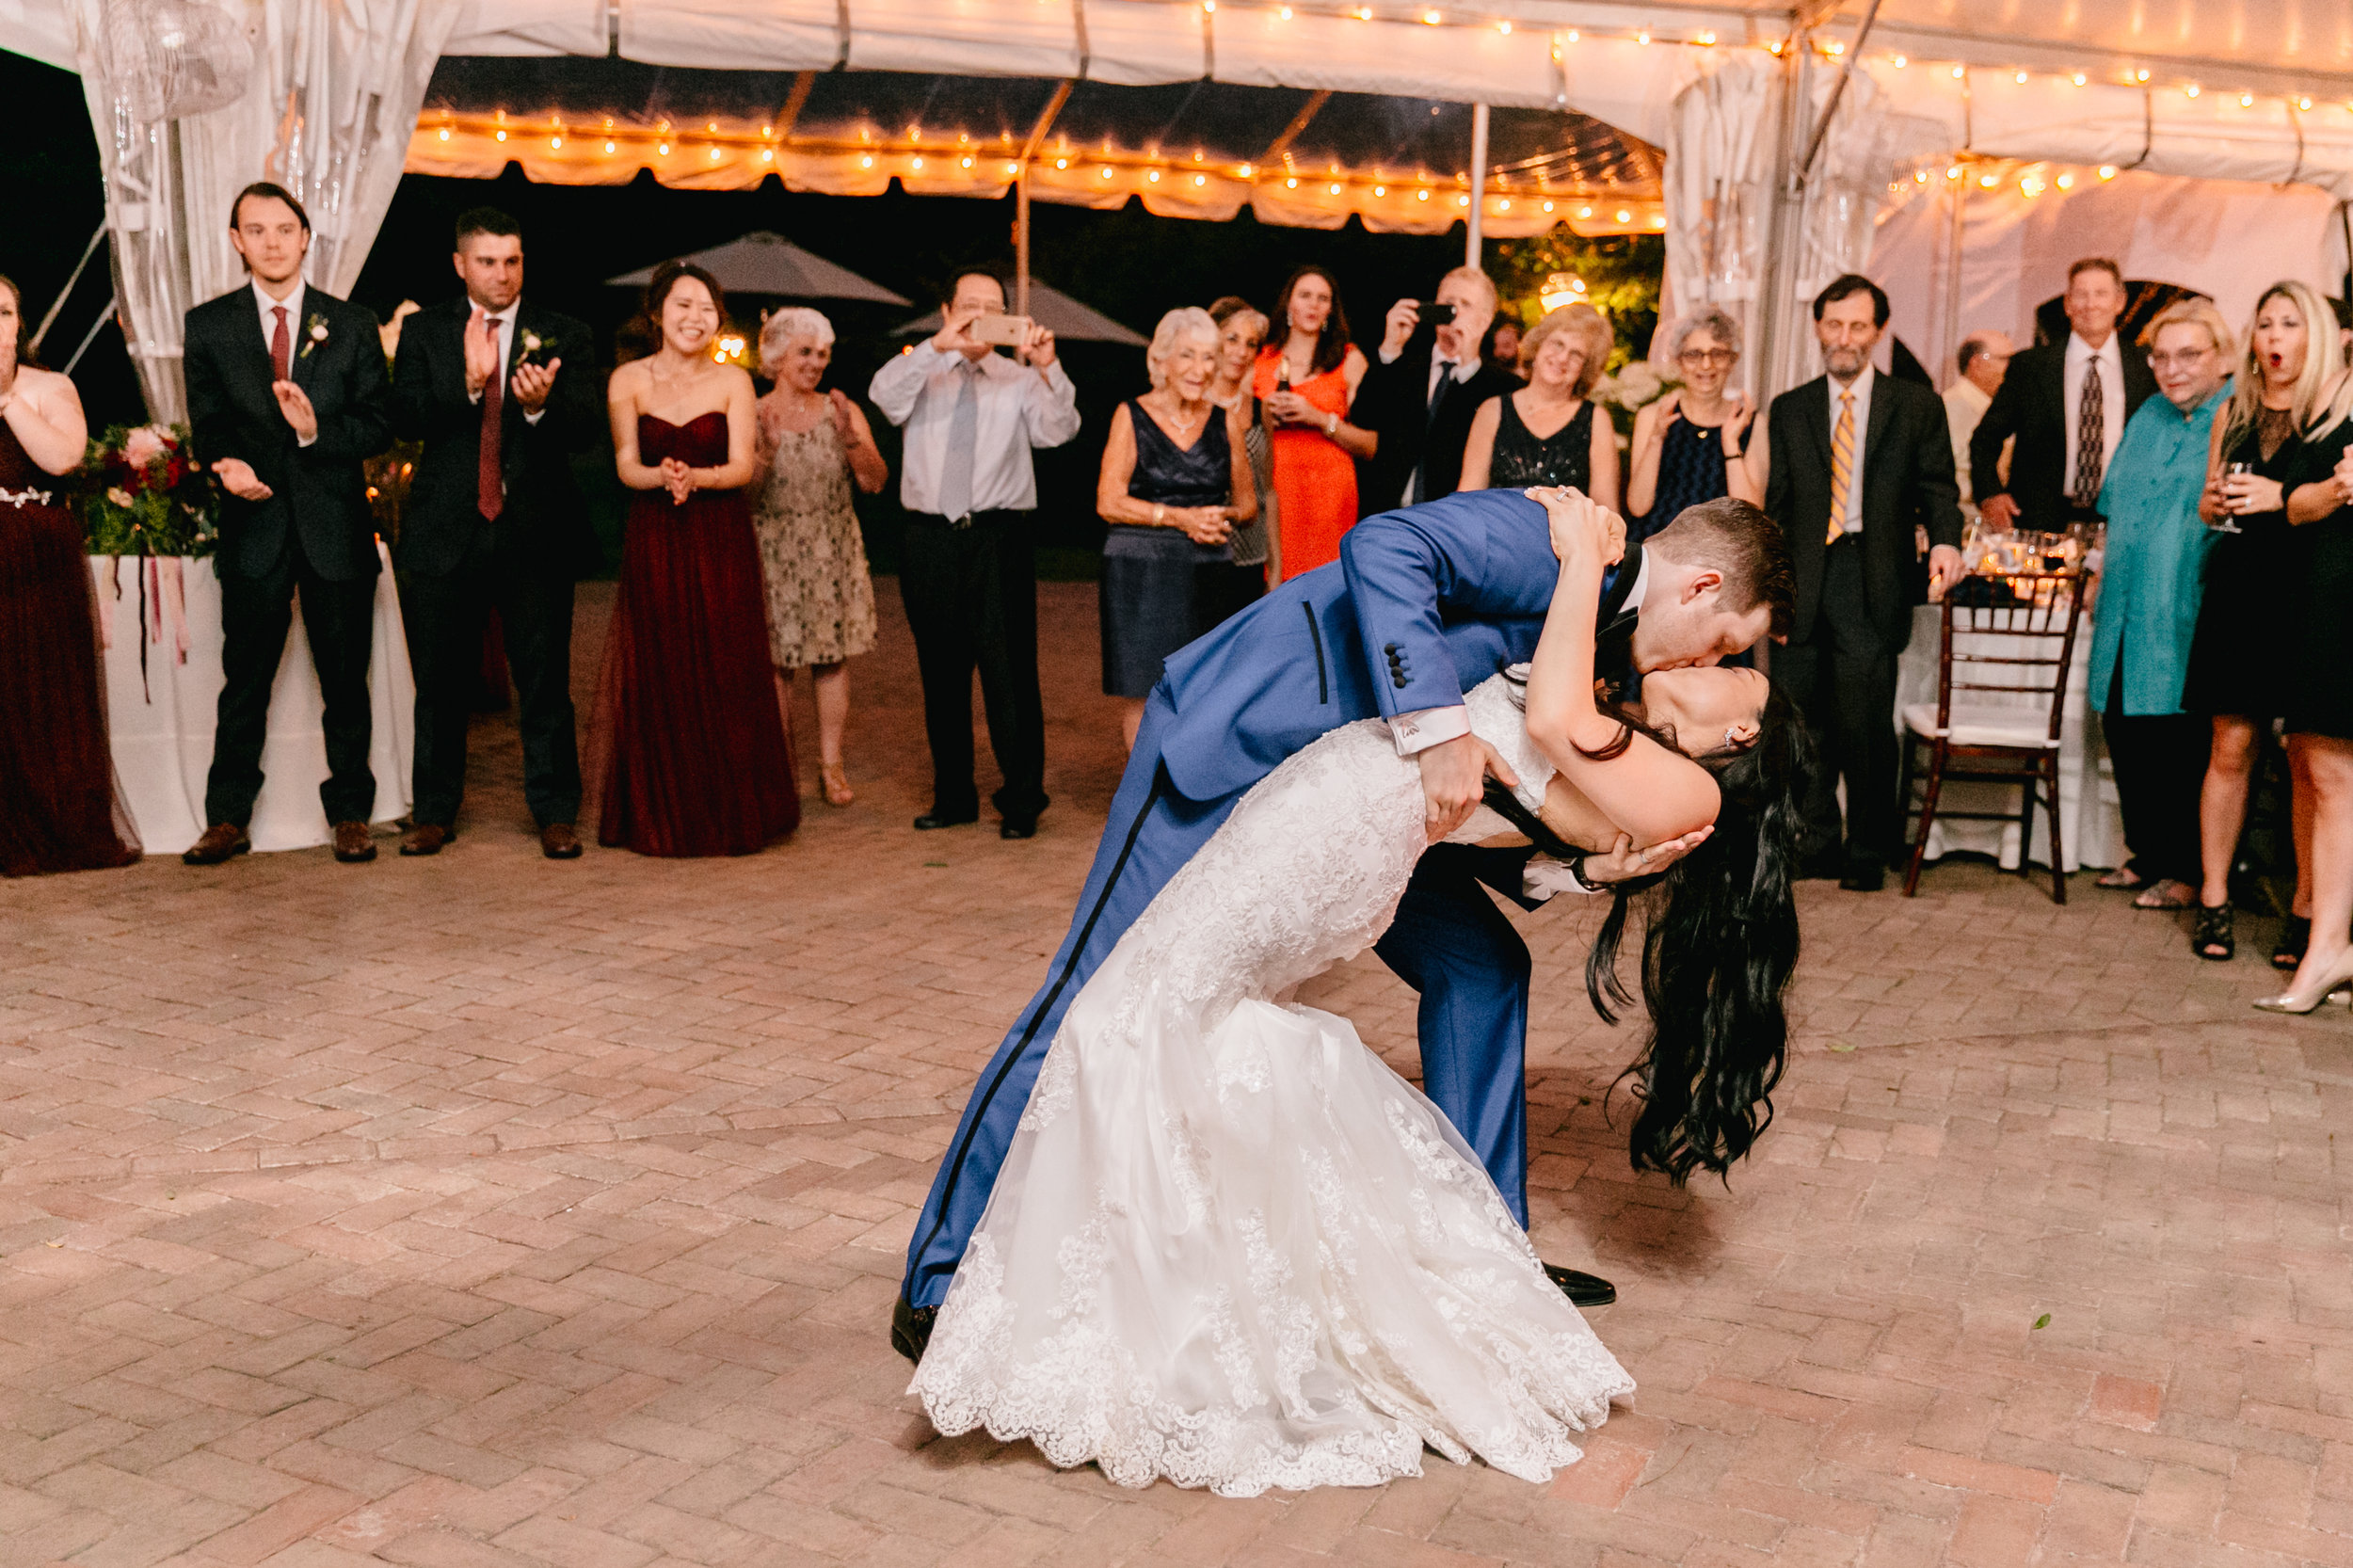 Sonia and Sam first dance